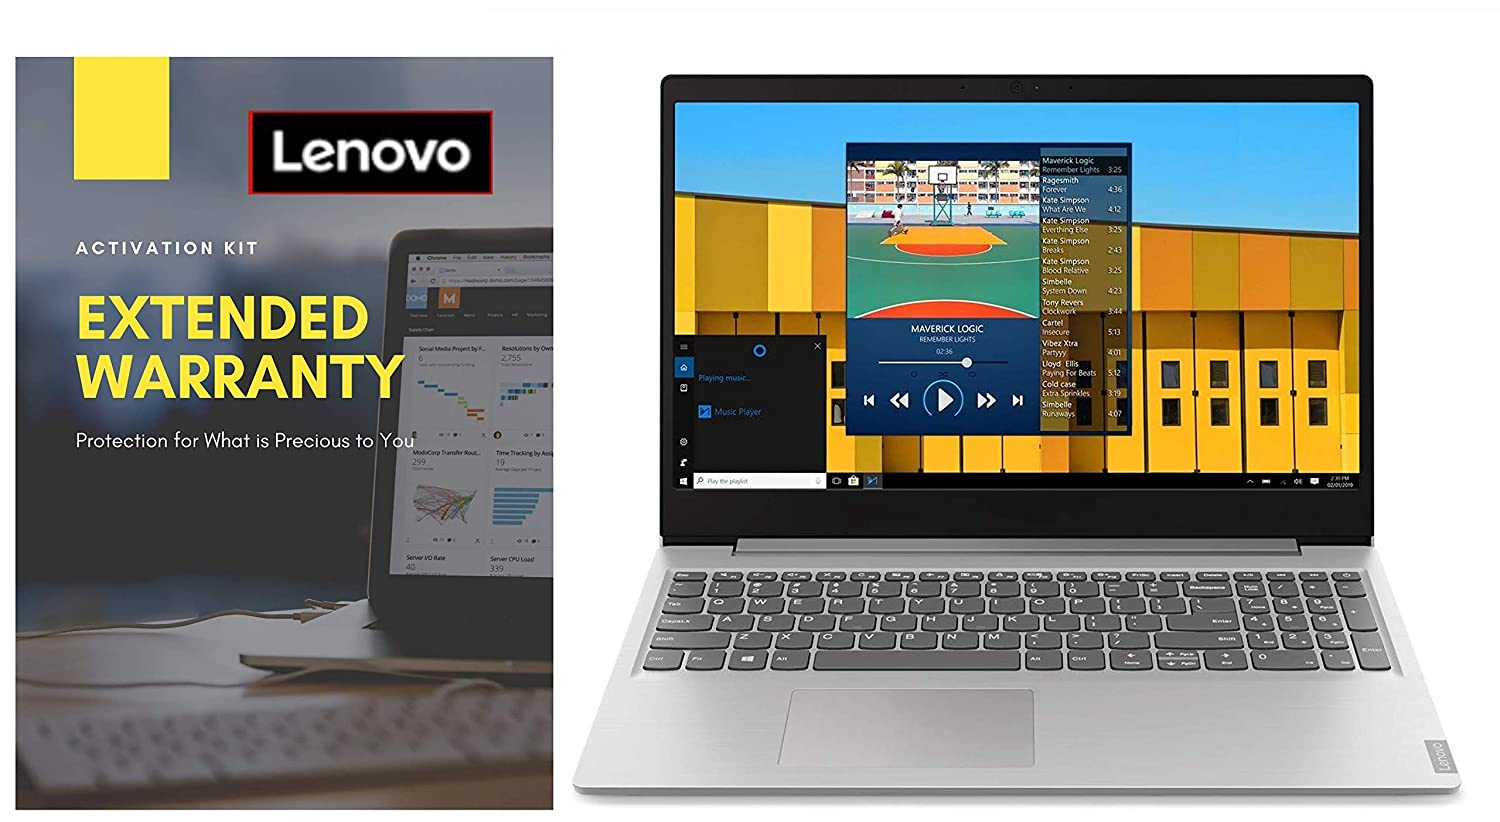 Lenovo ideapad s145 review and Pricing for 8th Generation